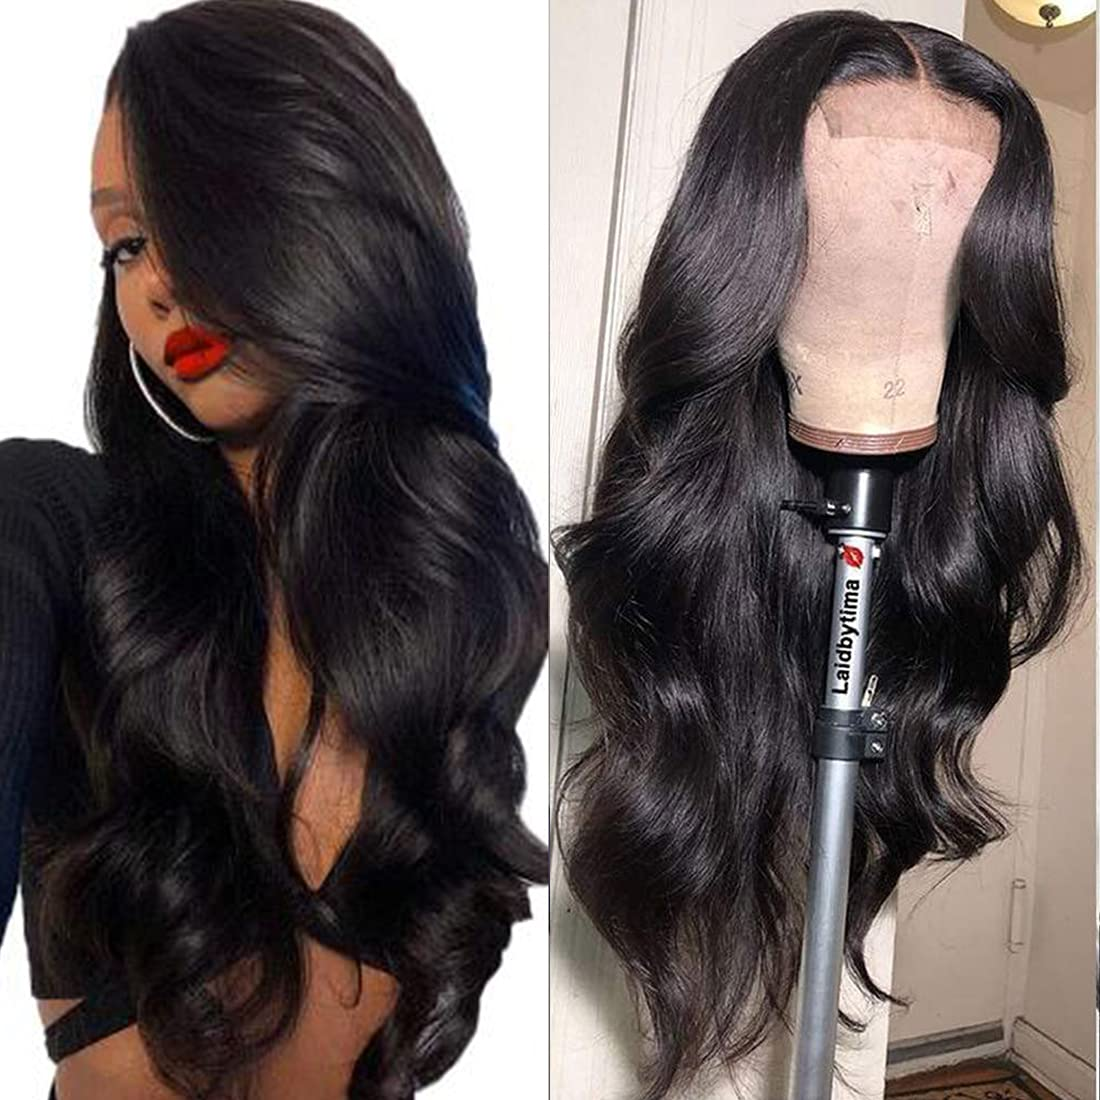 BLACKMOON HAIR 4x4 Frontal Max 53% OFF It is very popular Lace Wig Deep Human Wave Wa Body Hair